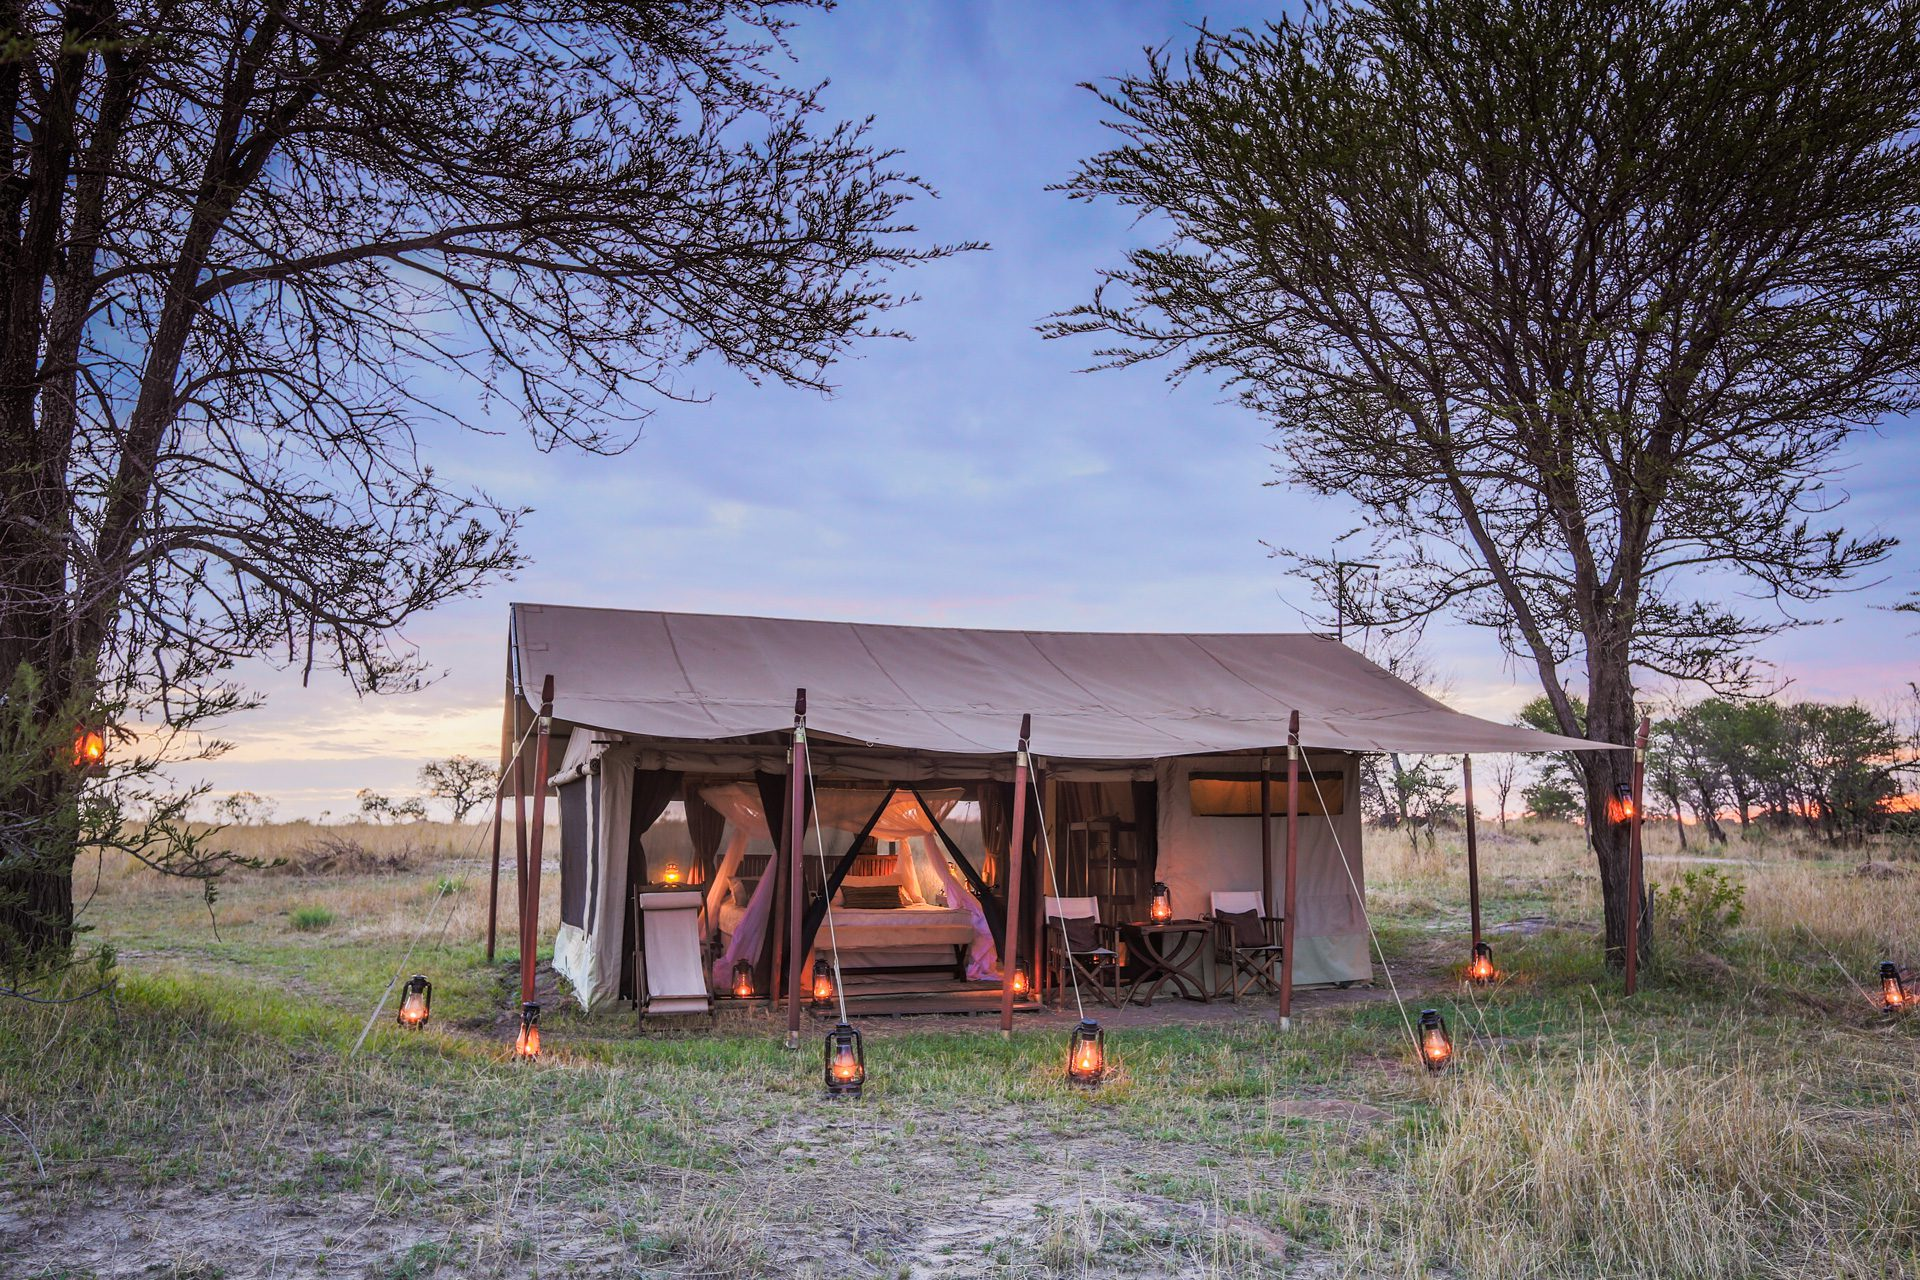 Finding the right safari mobile tented camp in the Serengeti delivers solitude